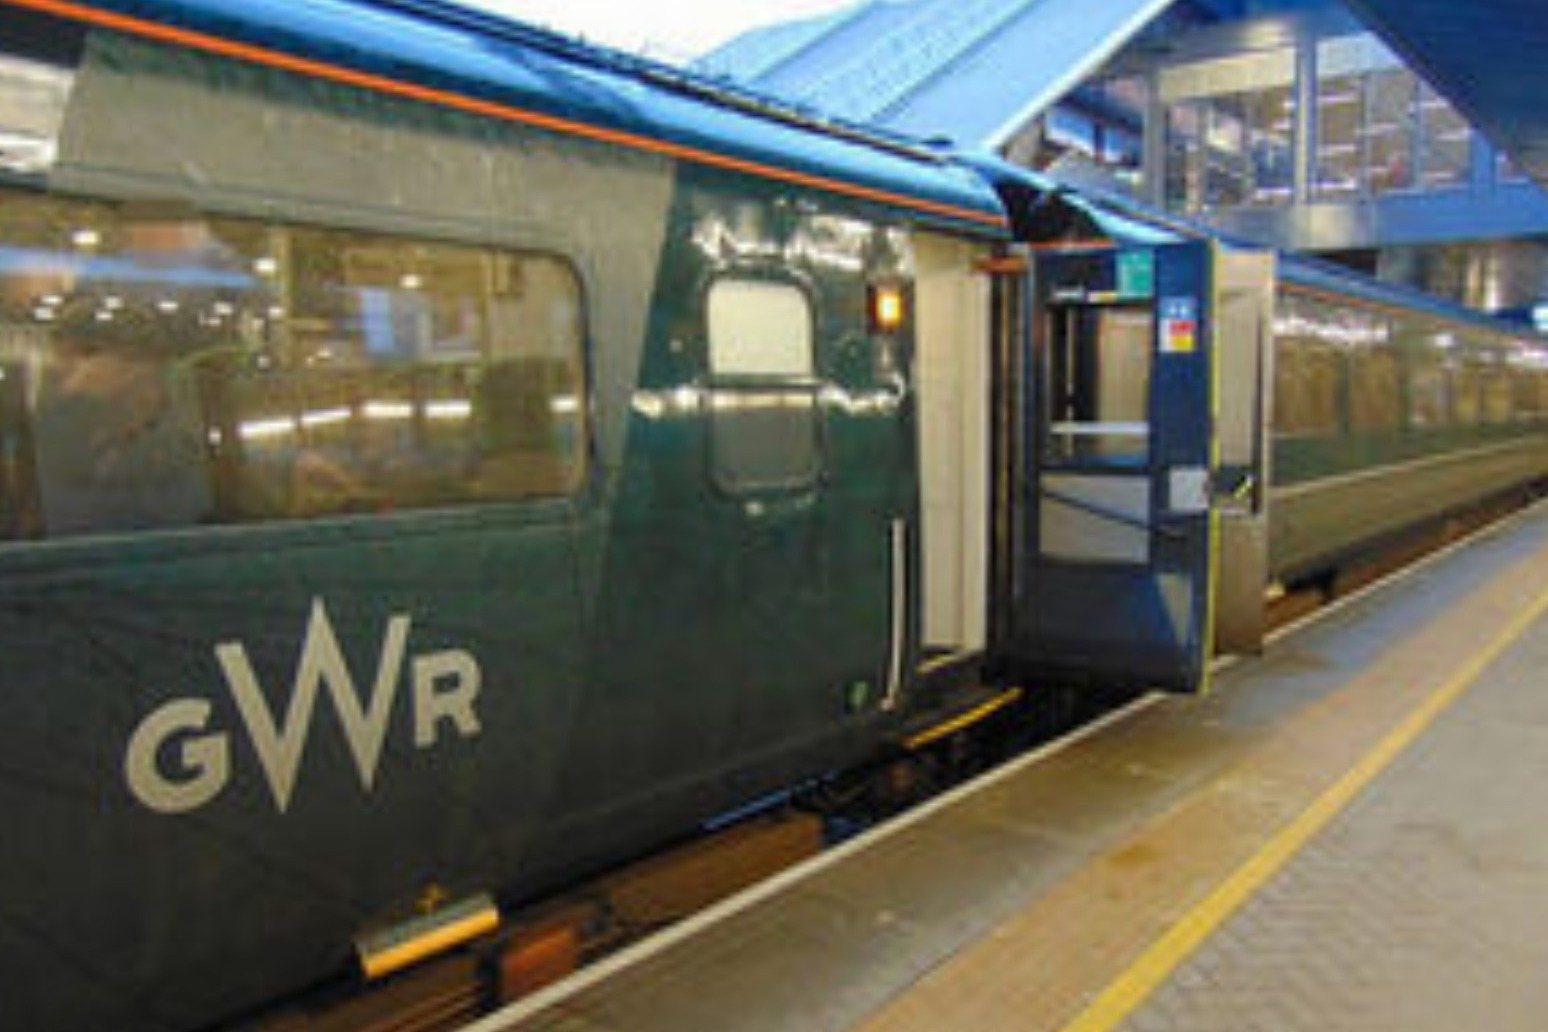 WOMAN DIED LEANING FROM TRAIN WINDOW BELOW INADEQUATE WARNING SIGN - REPORT